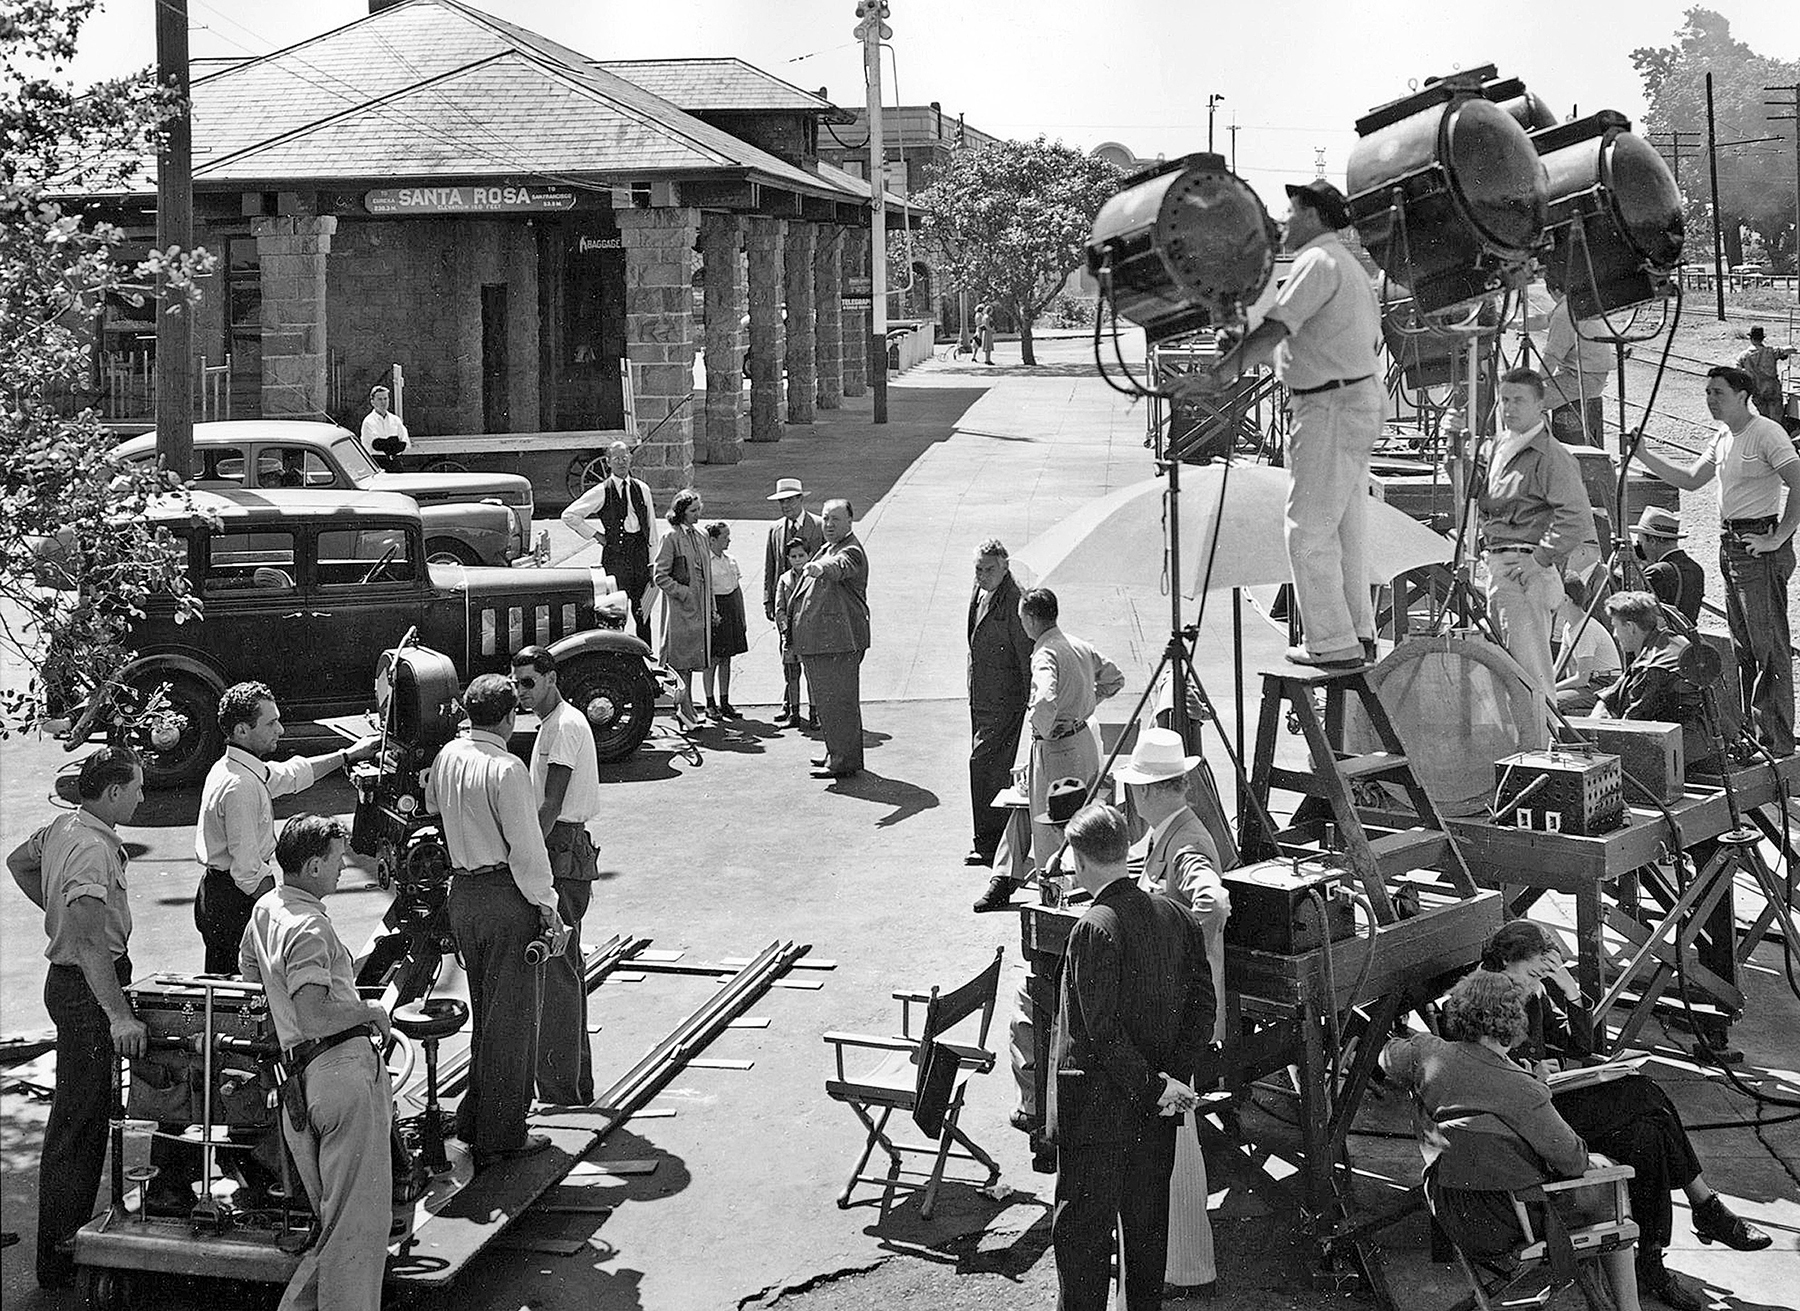 Hitchcock (center, pointing) and his production crew descended on the sleepy town of Santa Rosa, California, to shoot his thriller Shadow of a Doubt (1943), starring Teresa Wright and Joseph Cotten. Photographed by Joseph A. Valentine, ASC — who had previously shot Saboteur (1942) for Hitchcock — the picture was said to be the director's favorite. He and Valentine (seen here behind the camera, holding a viewfinder) would later collaborate on Rope (1948).